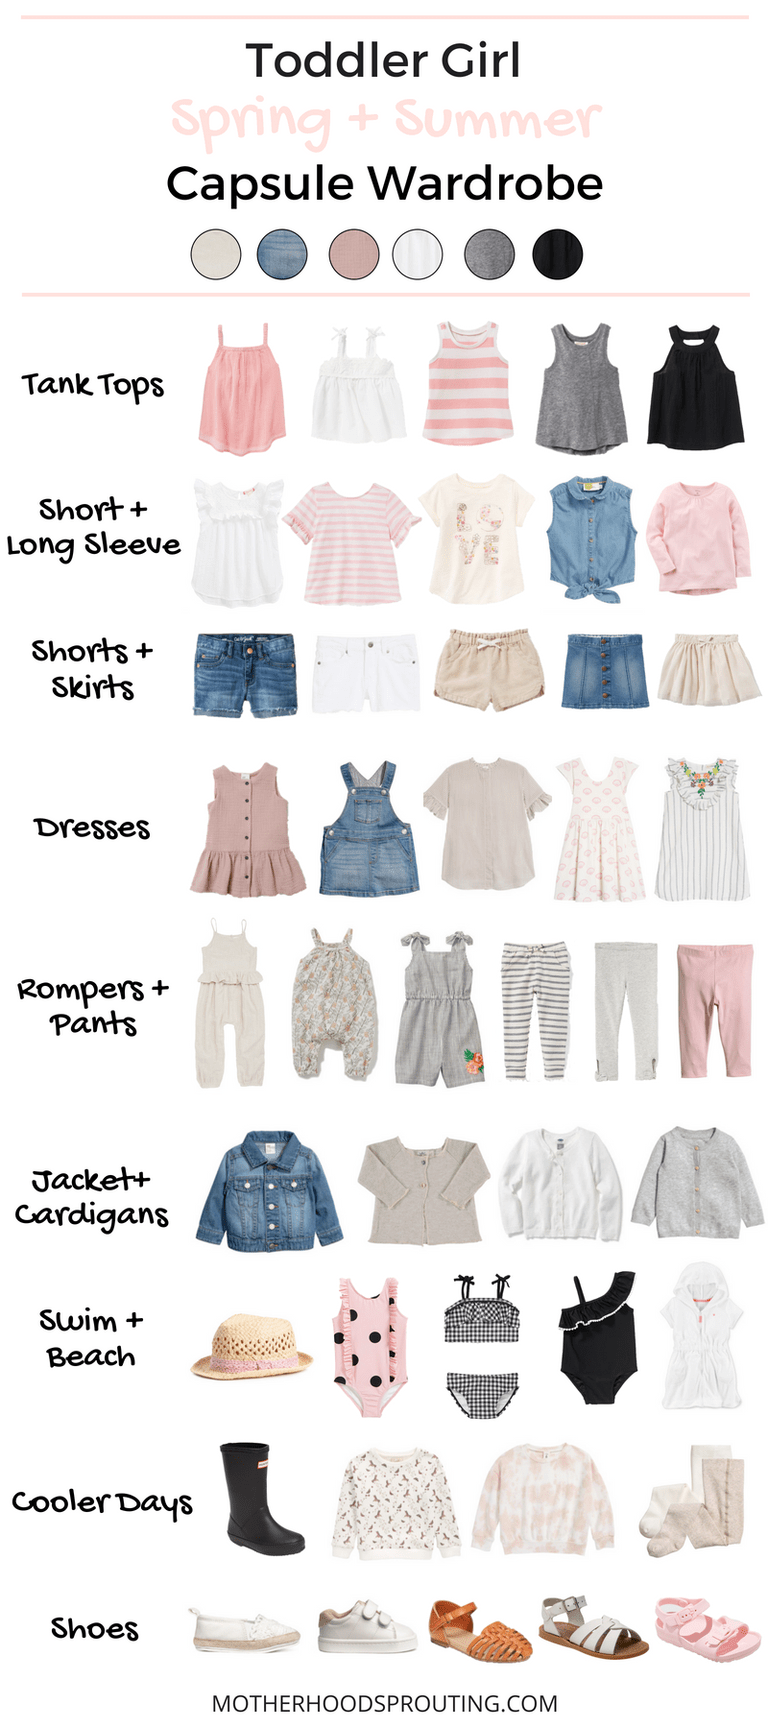 Toddler Girl Capsule Wardrobe: Spring and Summer! A summer wardrobe for your toddler girl! Great toddler girl clothes for summer vacations or trips to the beach. This capsule wardrobe for summer can be used as a shopping checklist when your go to buy your toddlers summer clothes! #summer #toddlerclothes #babygirlclothes #capsulewardrobe #beachclothes #toddlerswimsuit #motherhood #beachvacationclothes